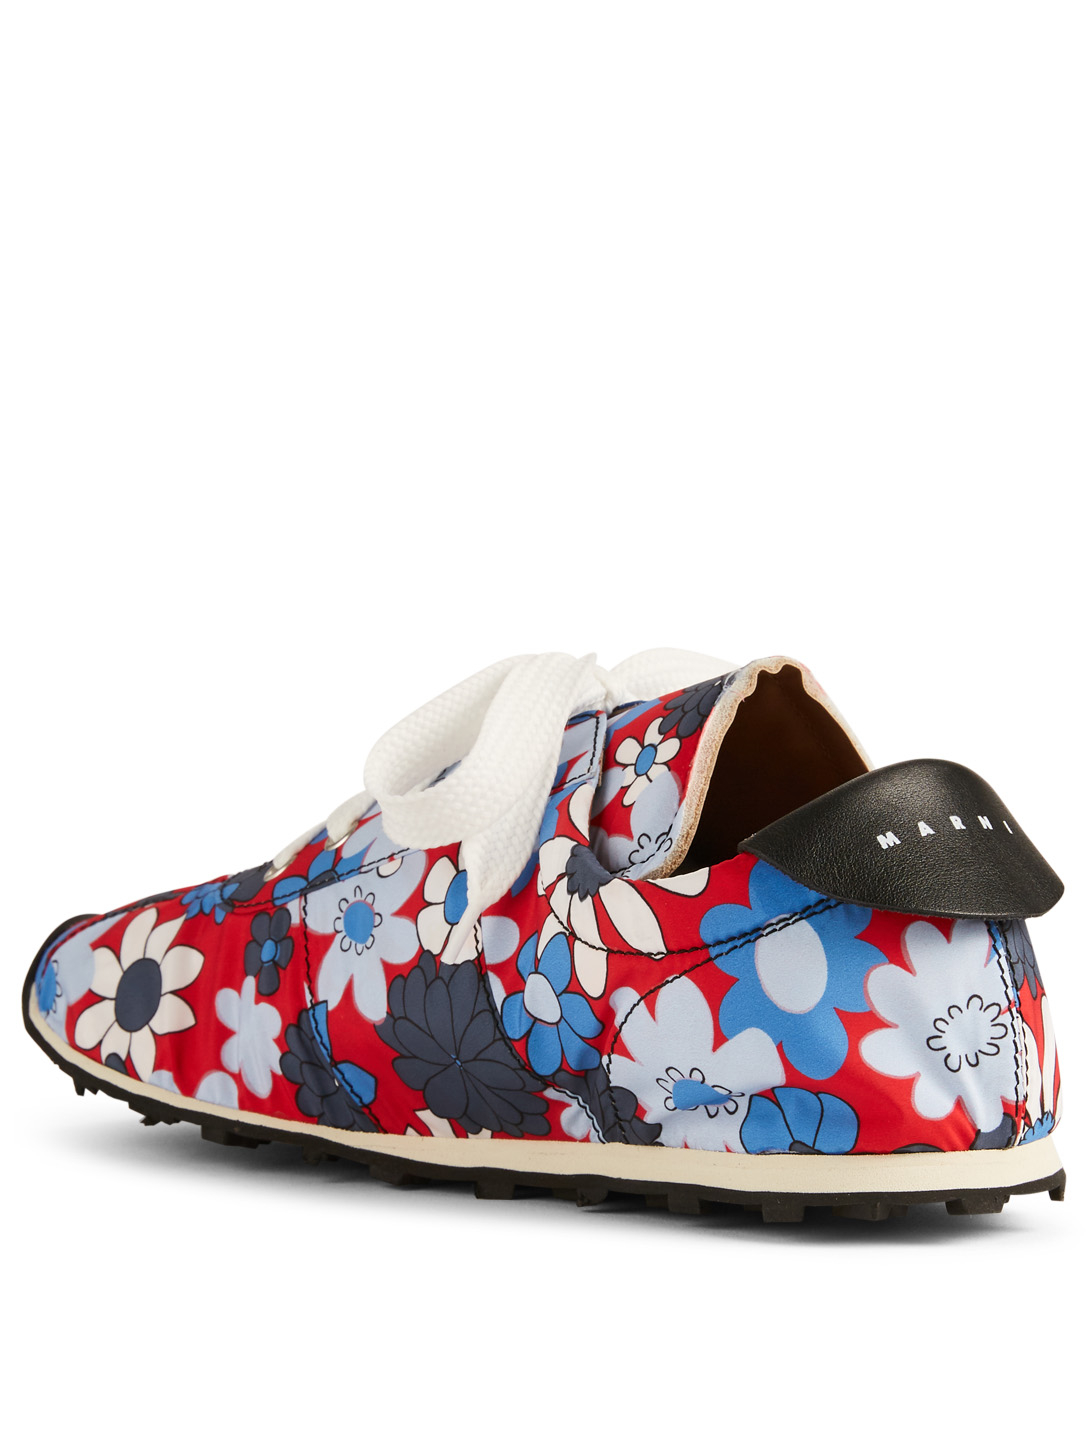 MARNI Tech Jersey Sneakers In Flower Print Men's Red